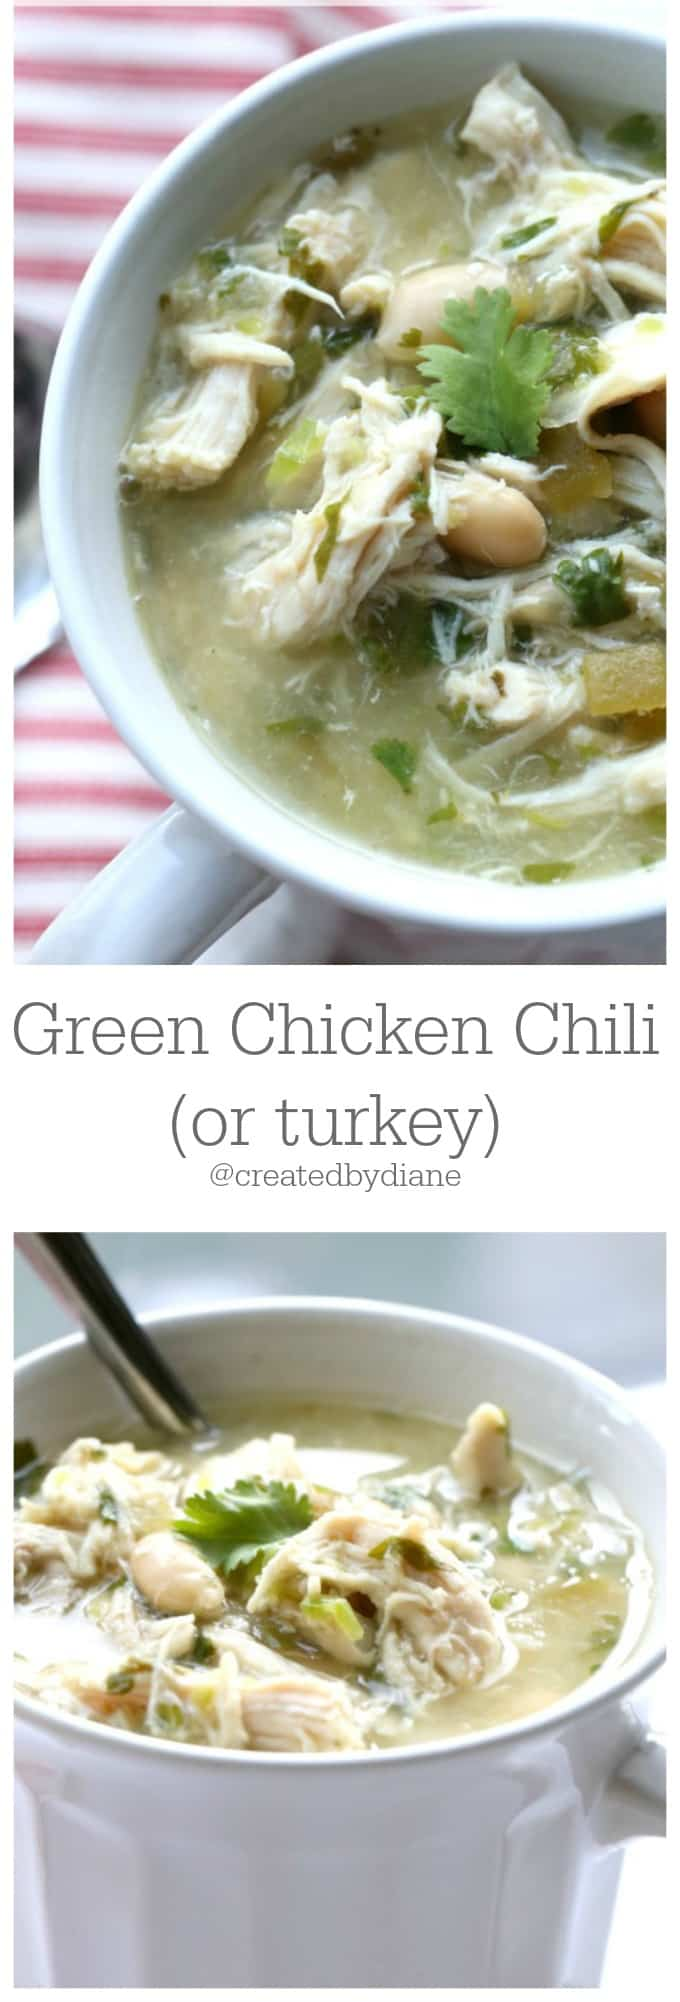 Green Chicken (or turkey) Chili @createdbydiane